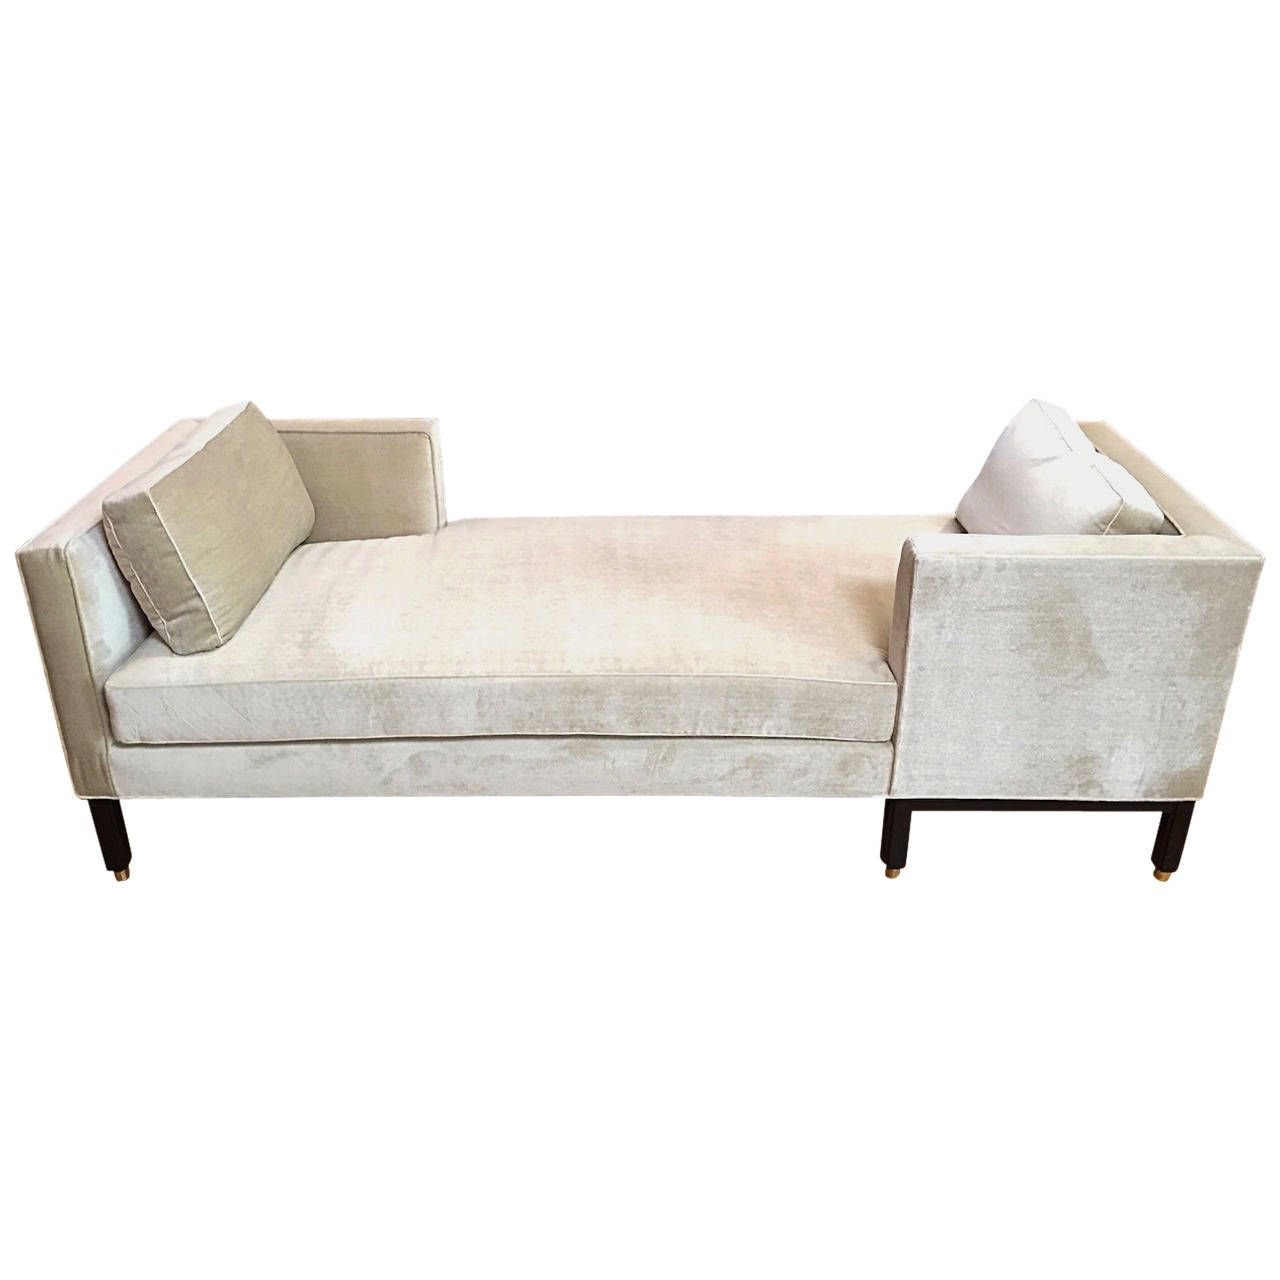 jlo 19081 emerald jonathan louis two sided chaise mathis jlo 19081 emerald jonathan louis two sided chaise mathis brothers furniture sofies room pinterest brothers furniture room and living rooms